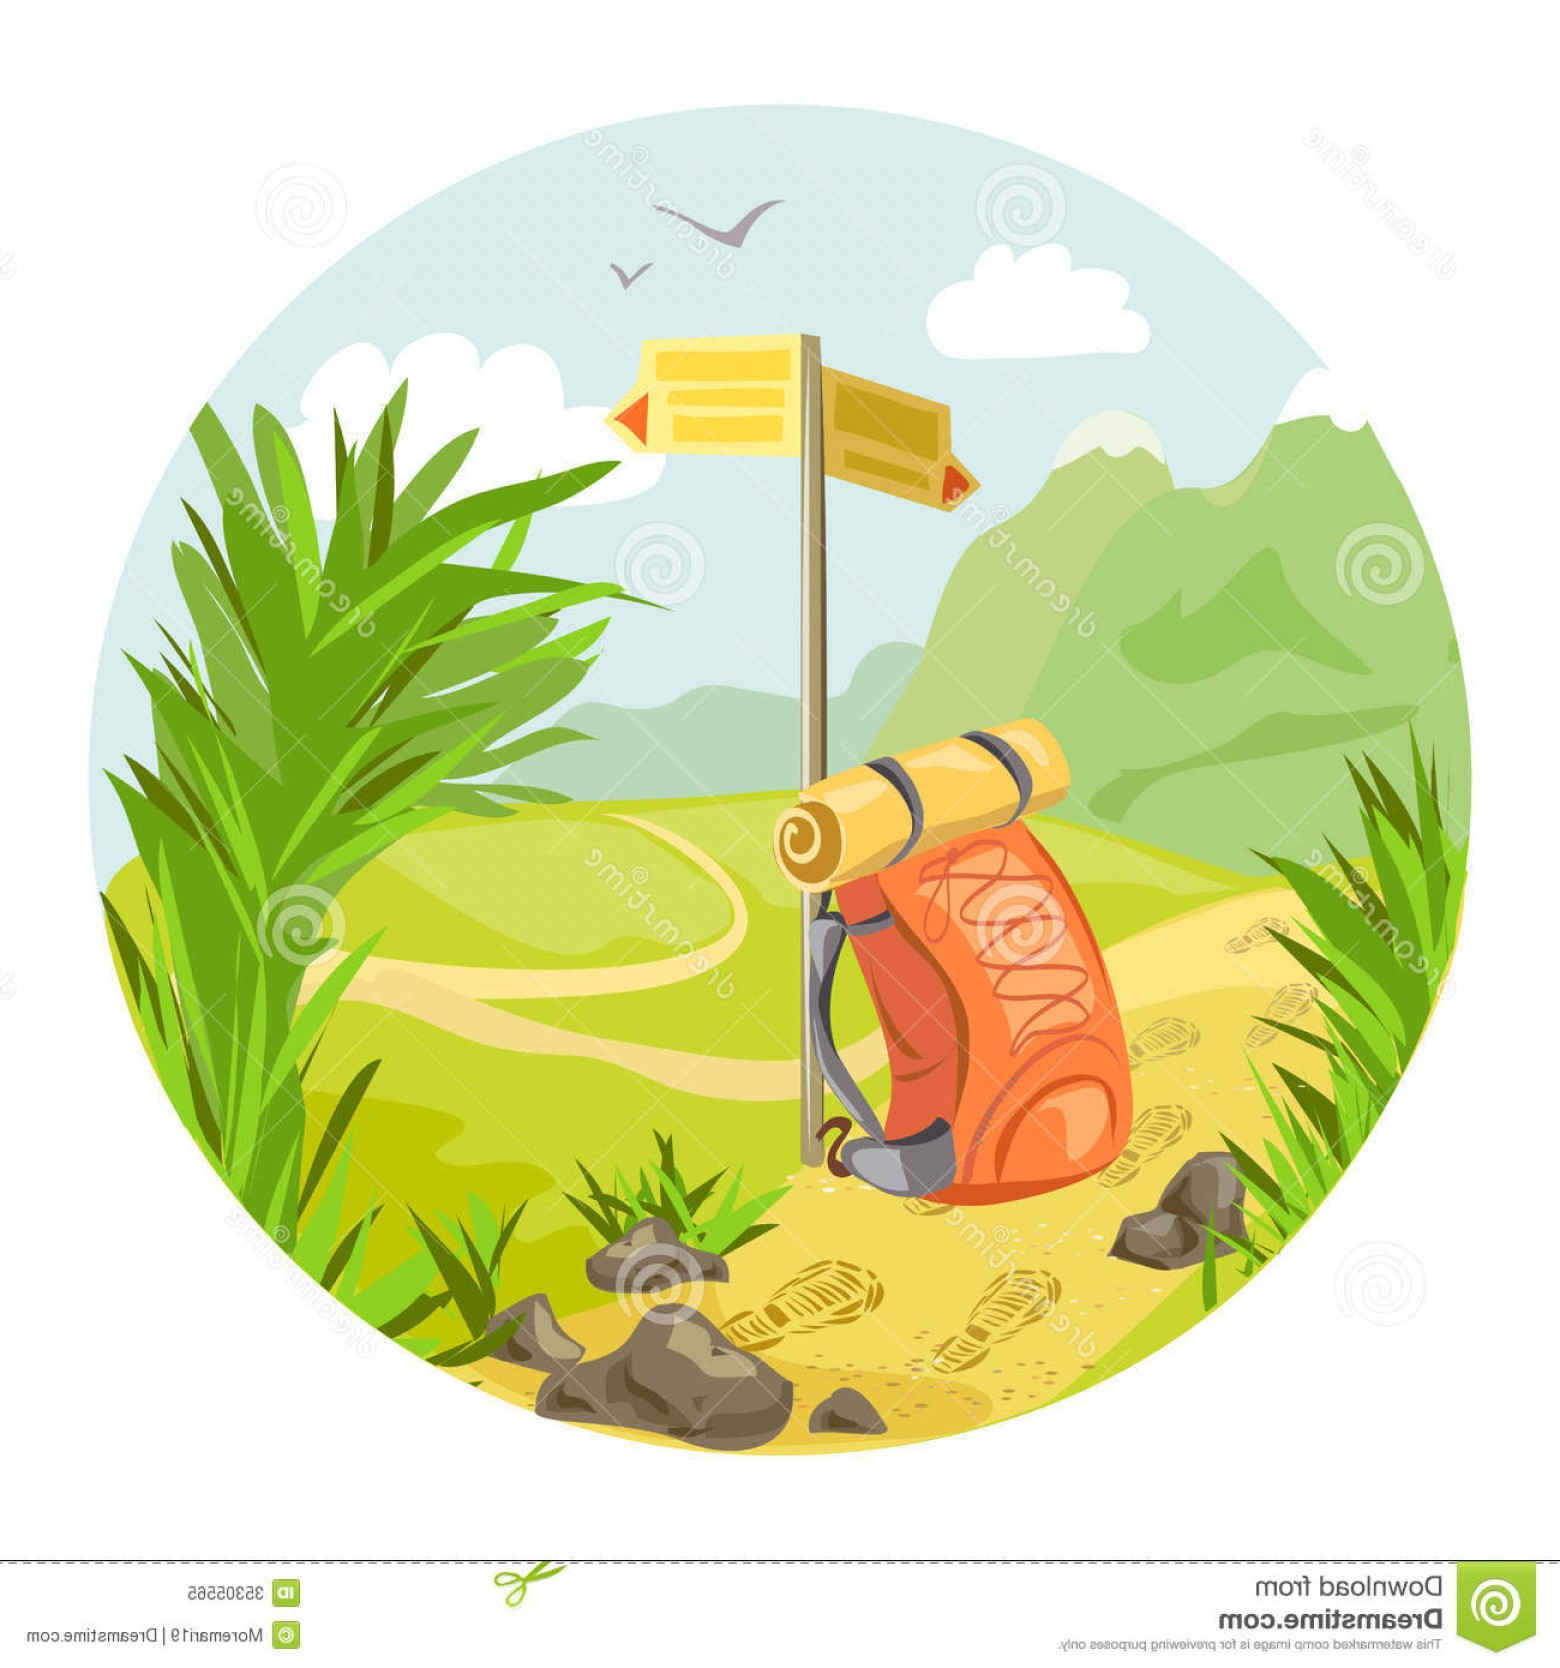 Mountain Trail Vector: Royalty Free Stock Photo Hiking Mountain Landscape Vector Illustration Image